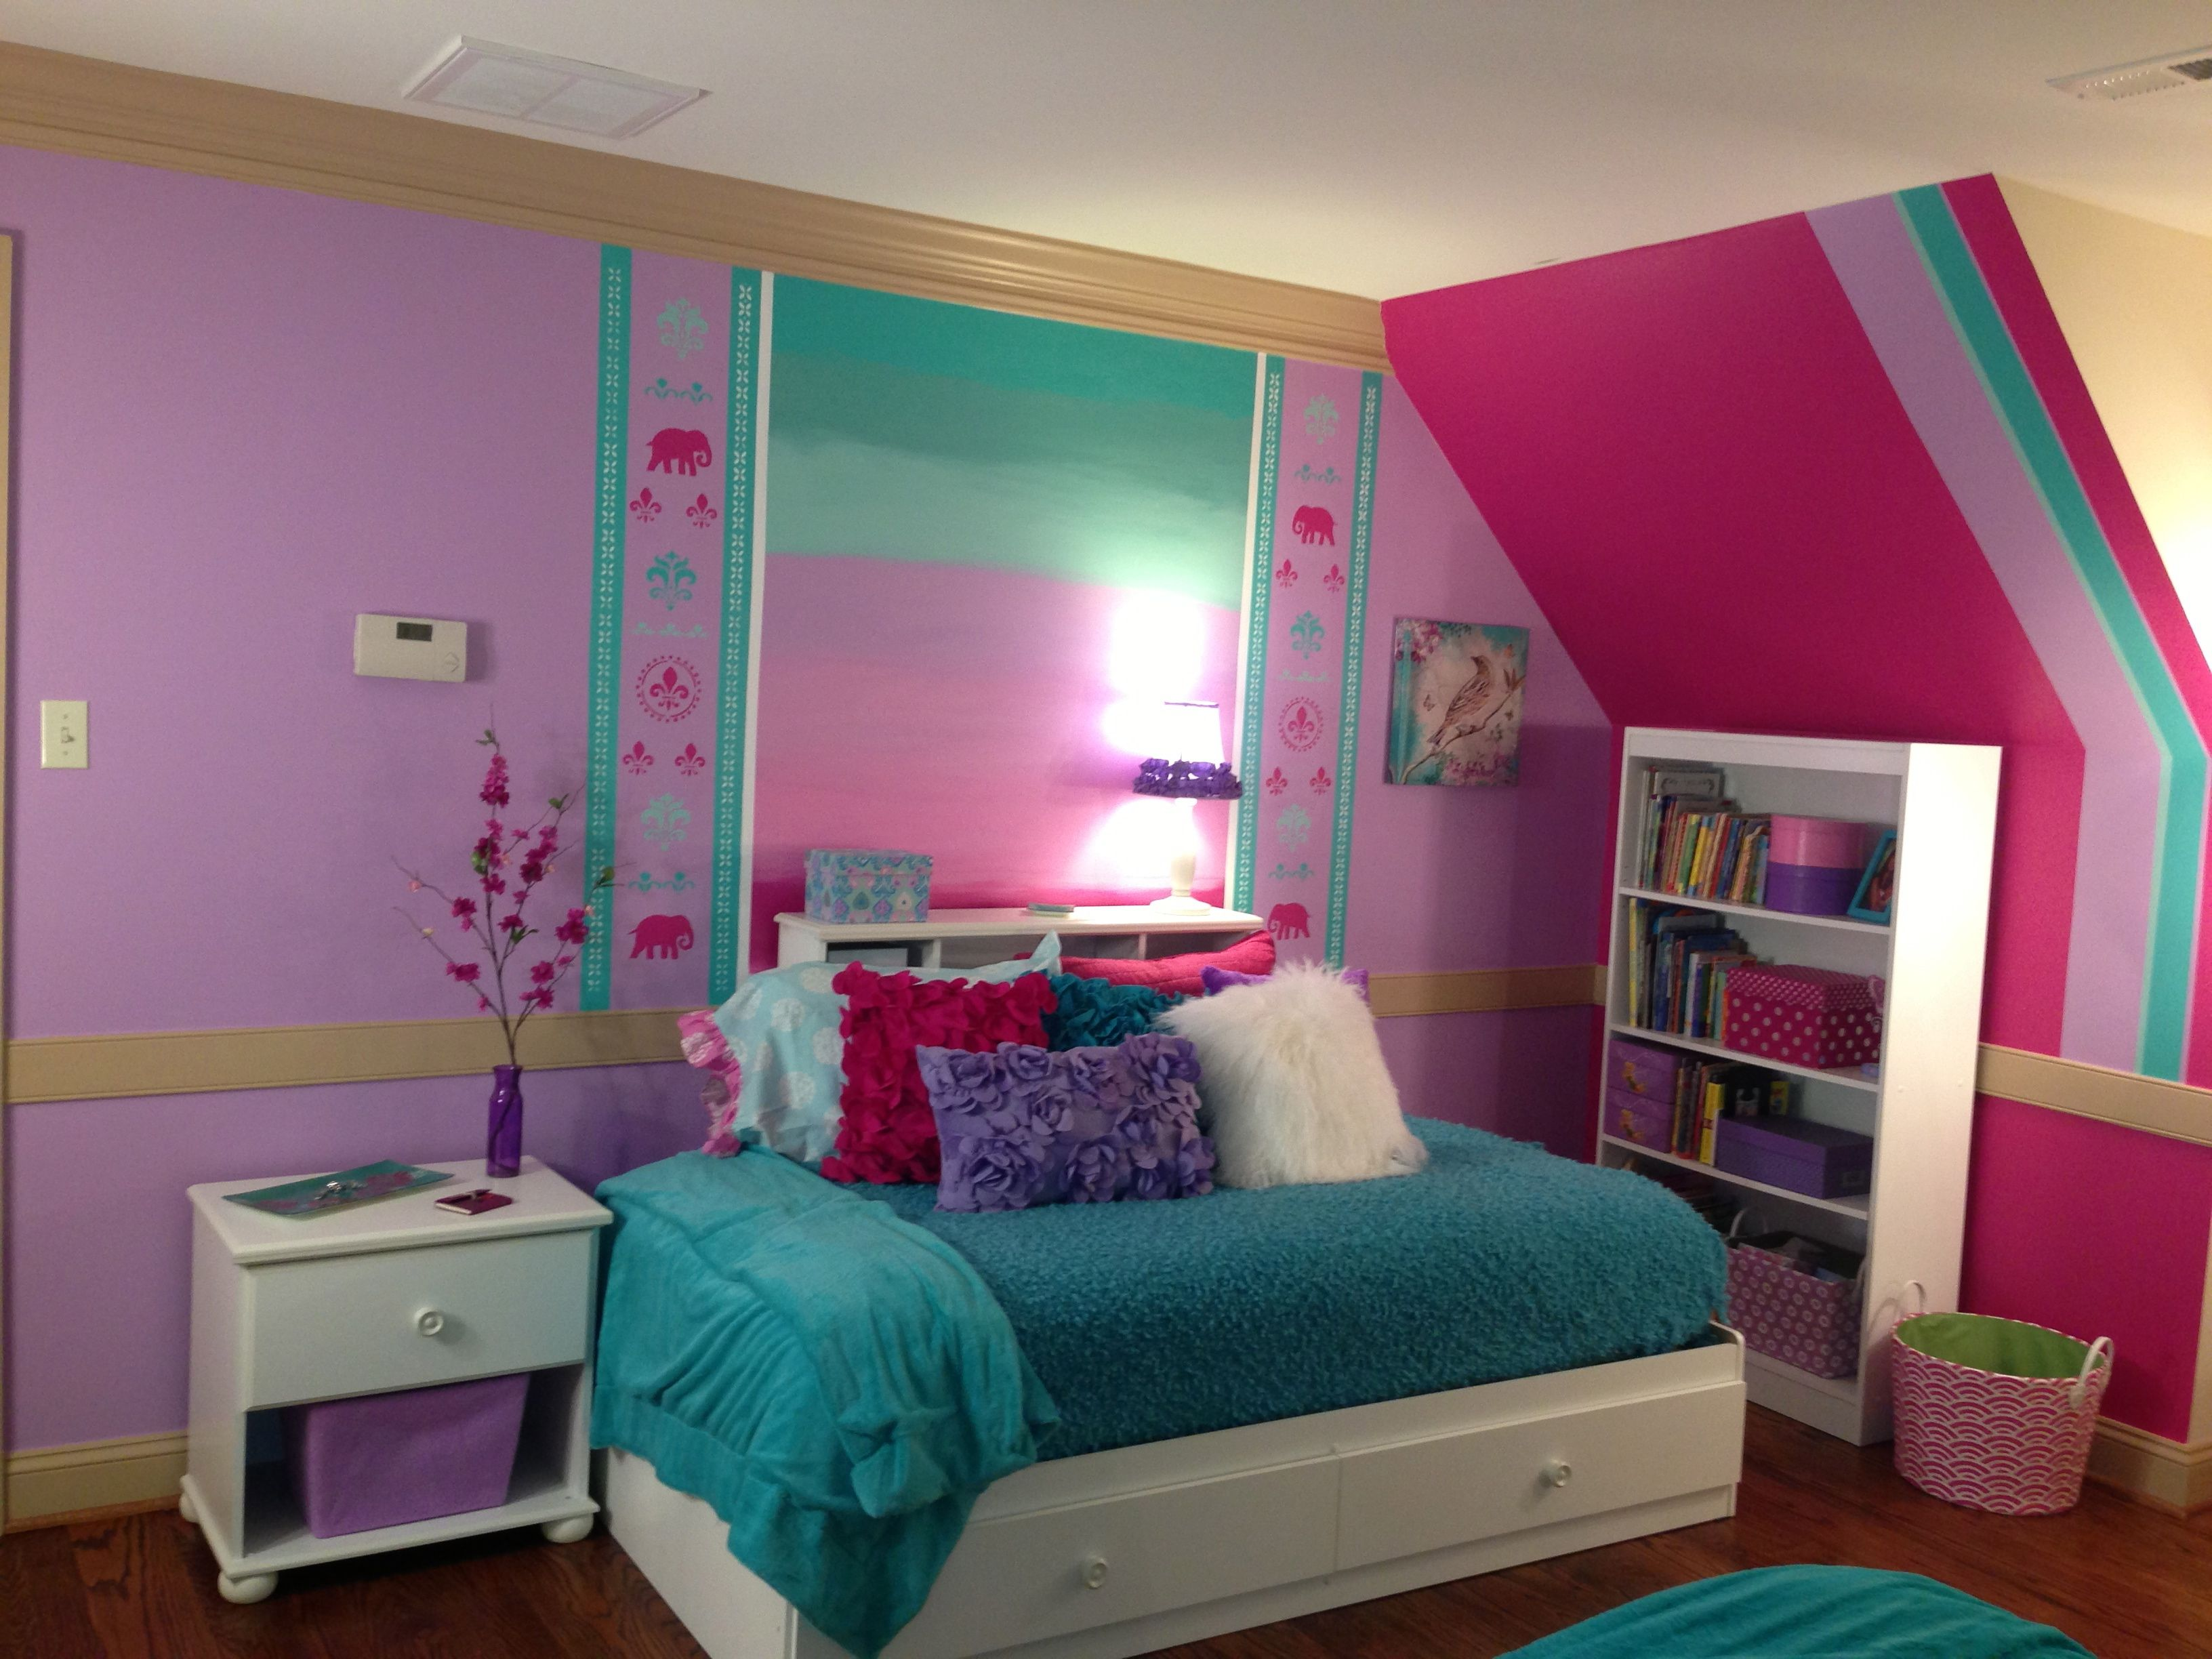 Making the most of space with a twin bed 7 year old 15 year old boy bedroom ideas